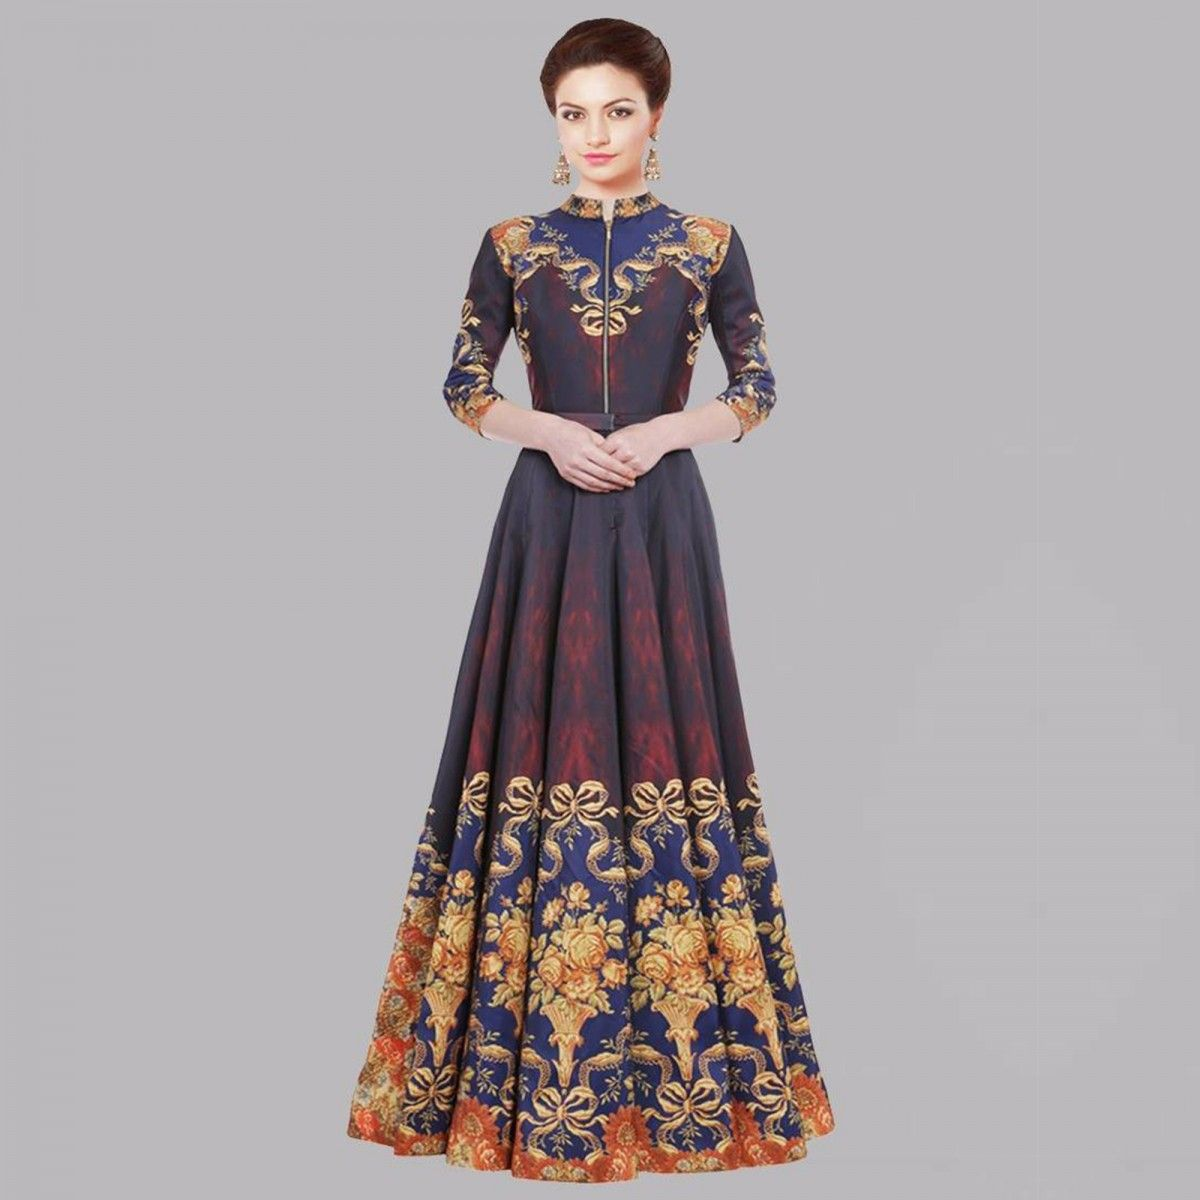 Wholesale plus size dresses from india